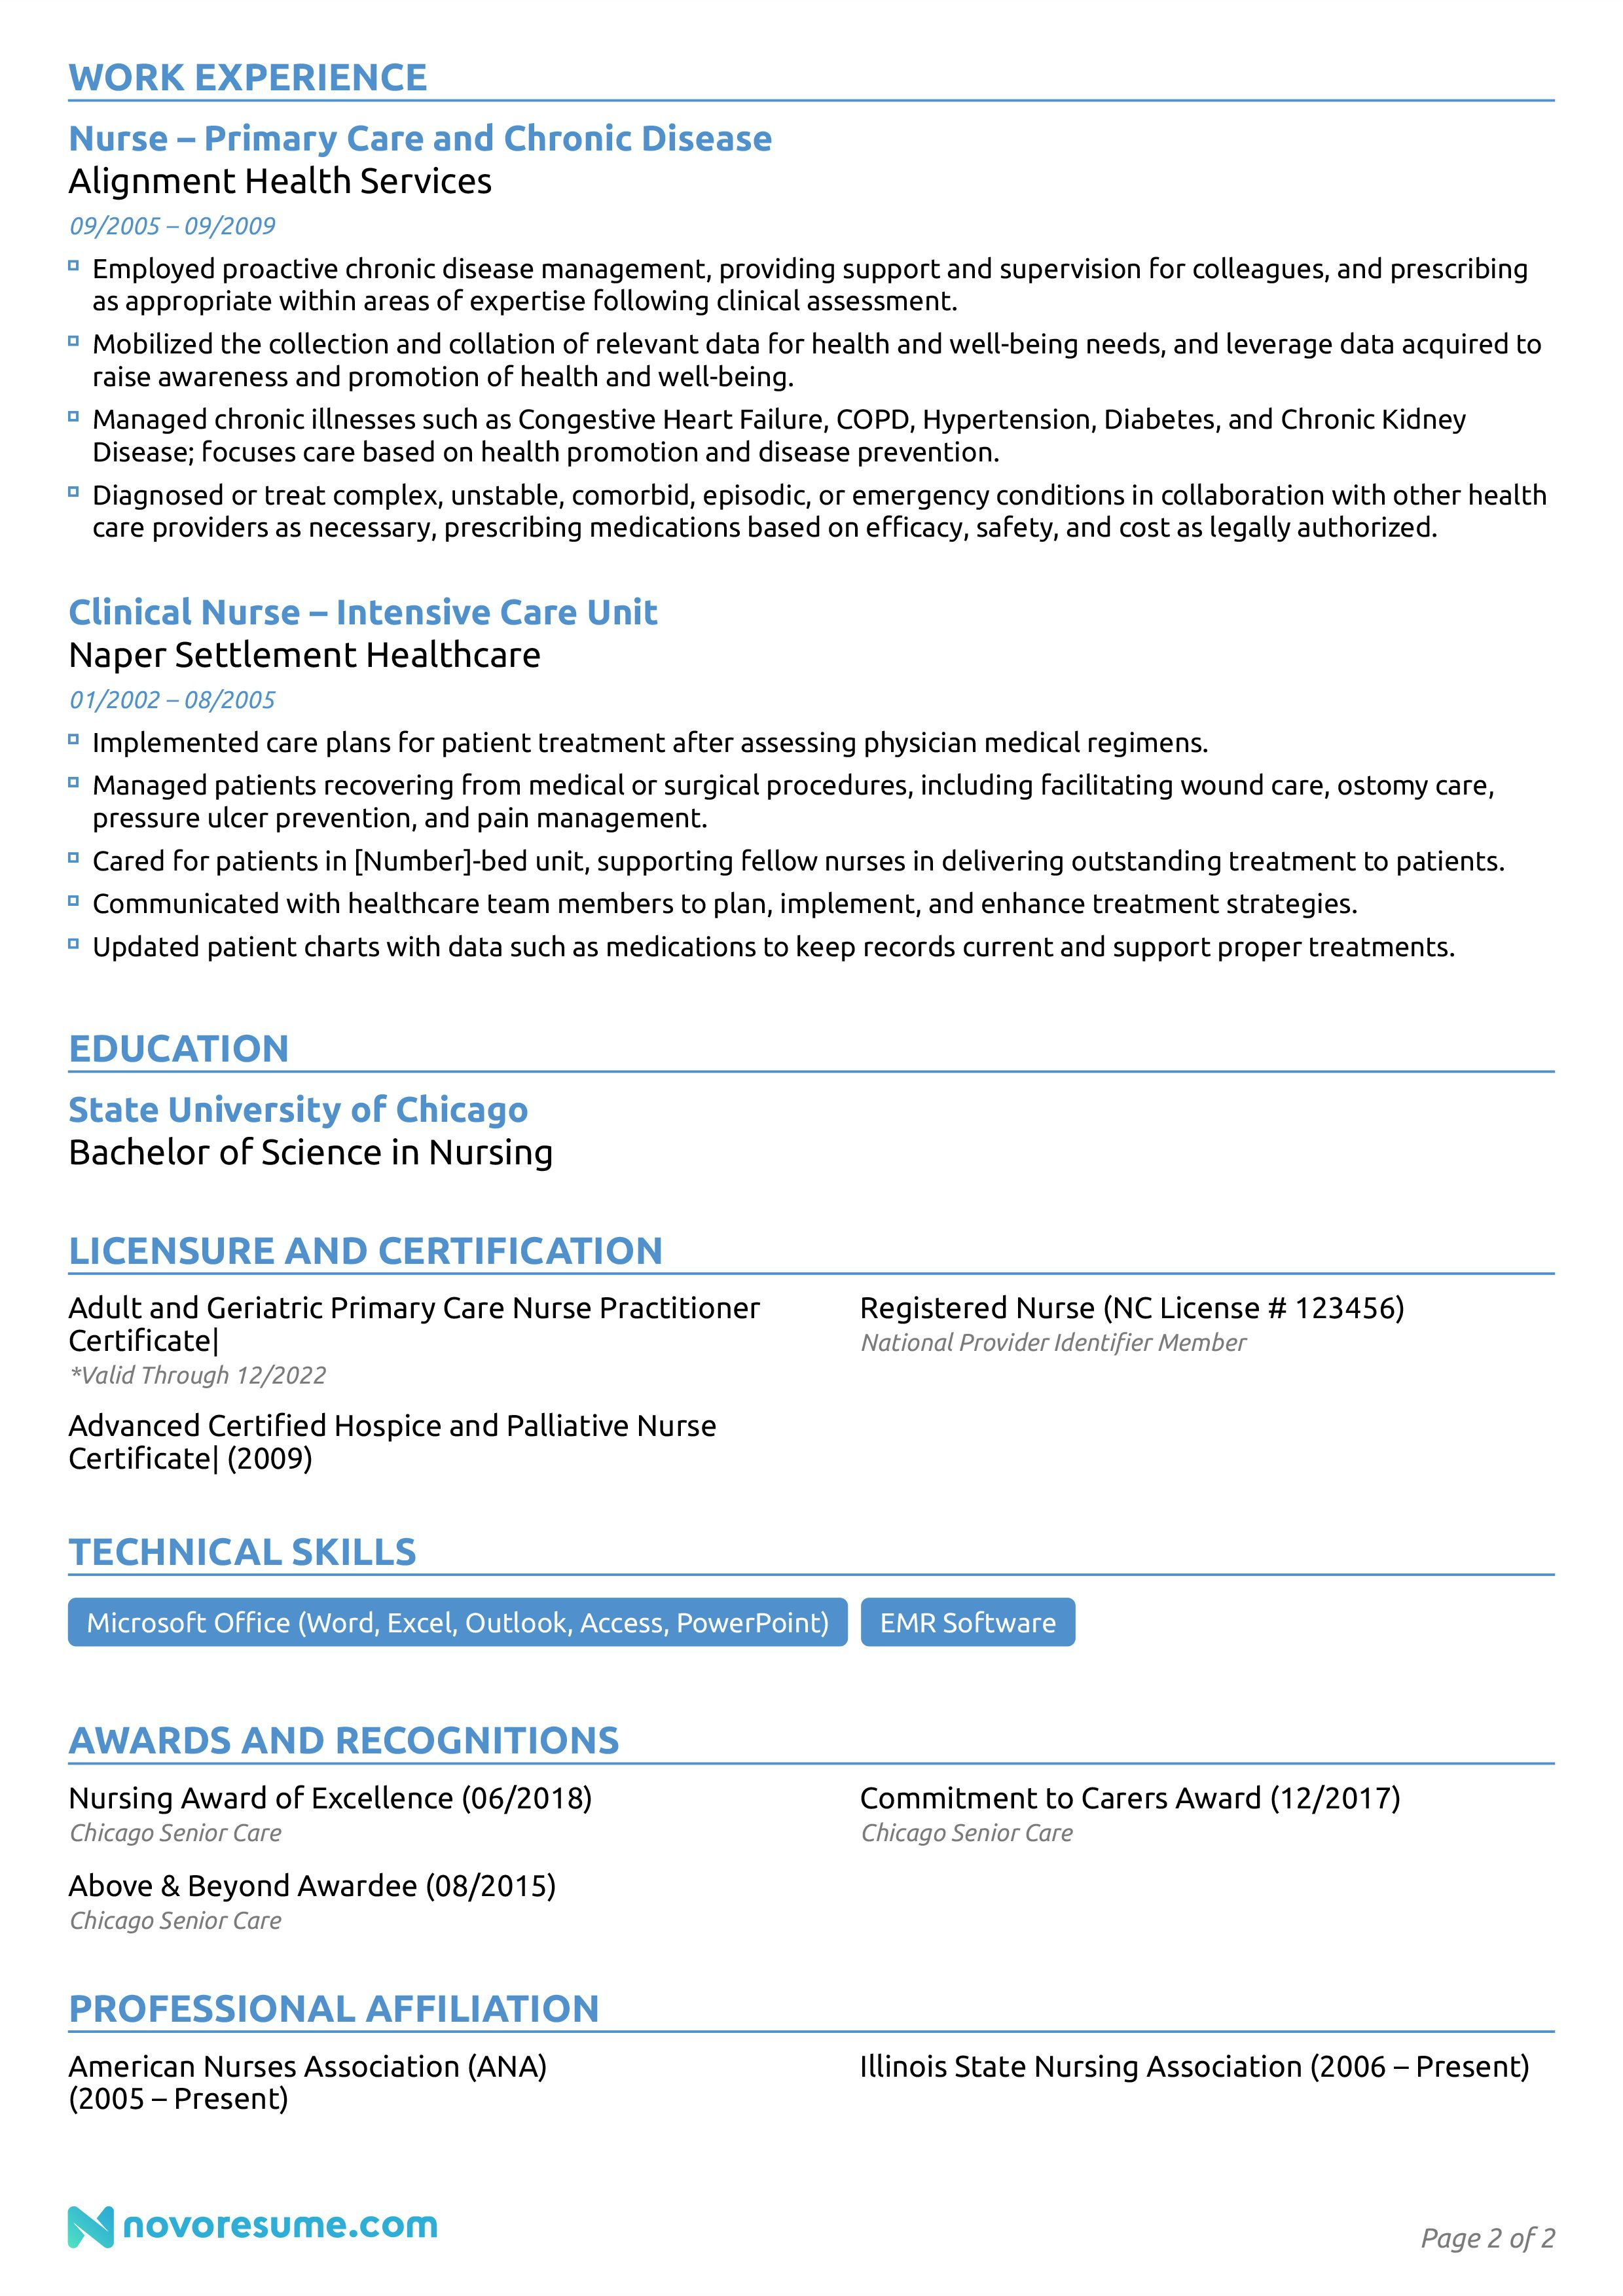 006 Phenomenal Nurse Resume Template Free Design  Graduate RnFull